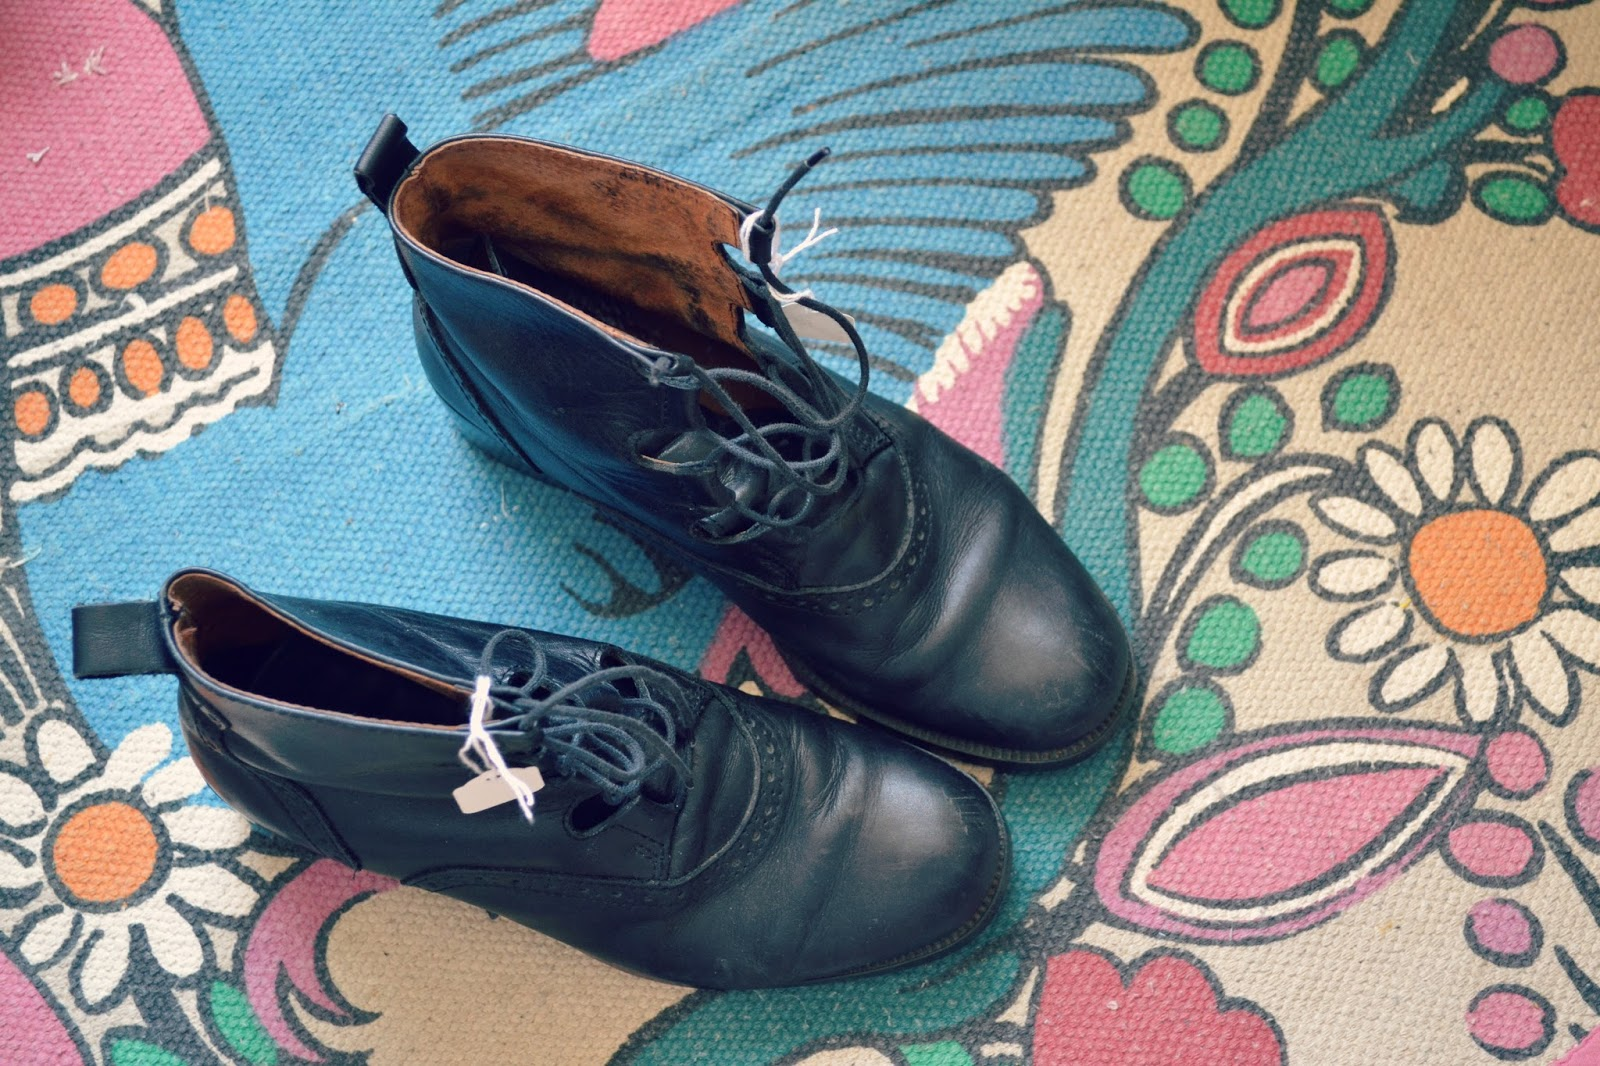 charity shop find ankle boots vintage alexa chung lace up